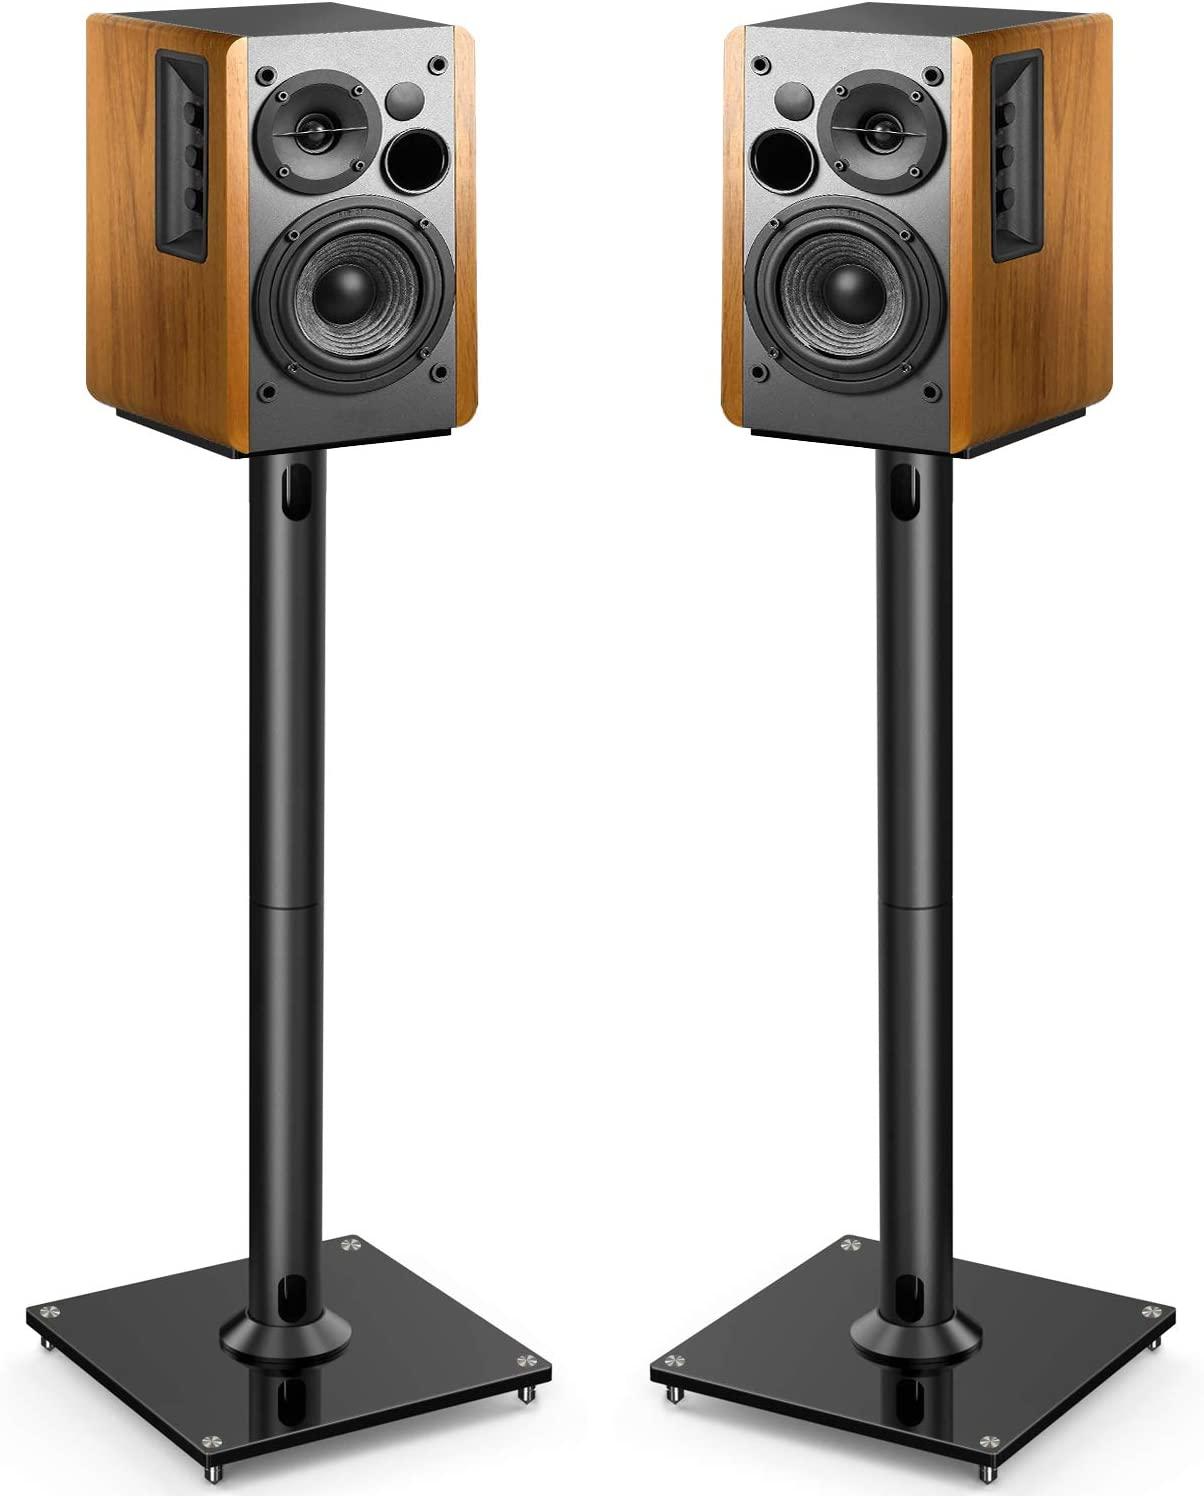 PERLESMITH Universal Floor Speaker Stands 26 Inch for Surround Sound and Bookshelf Speakers